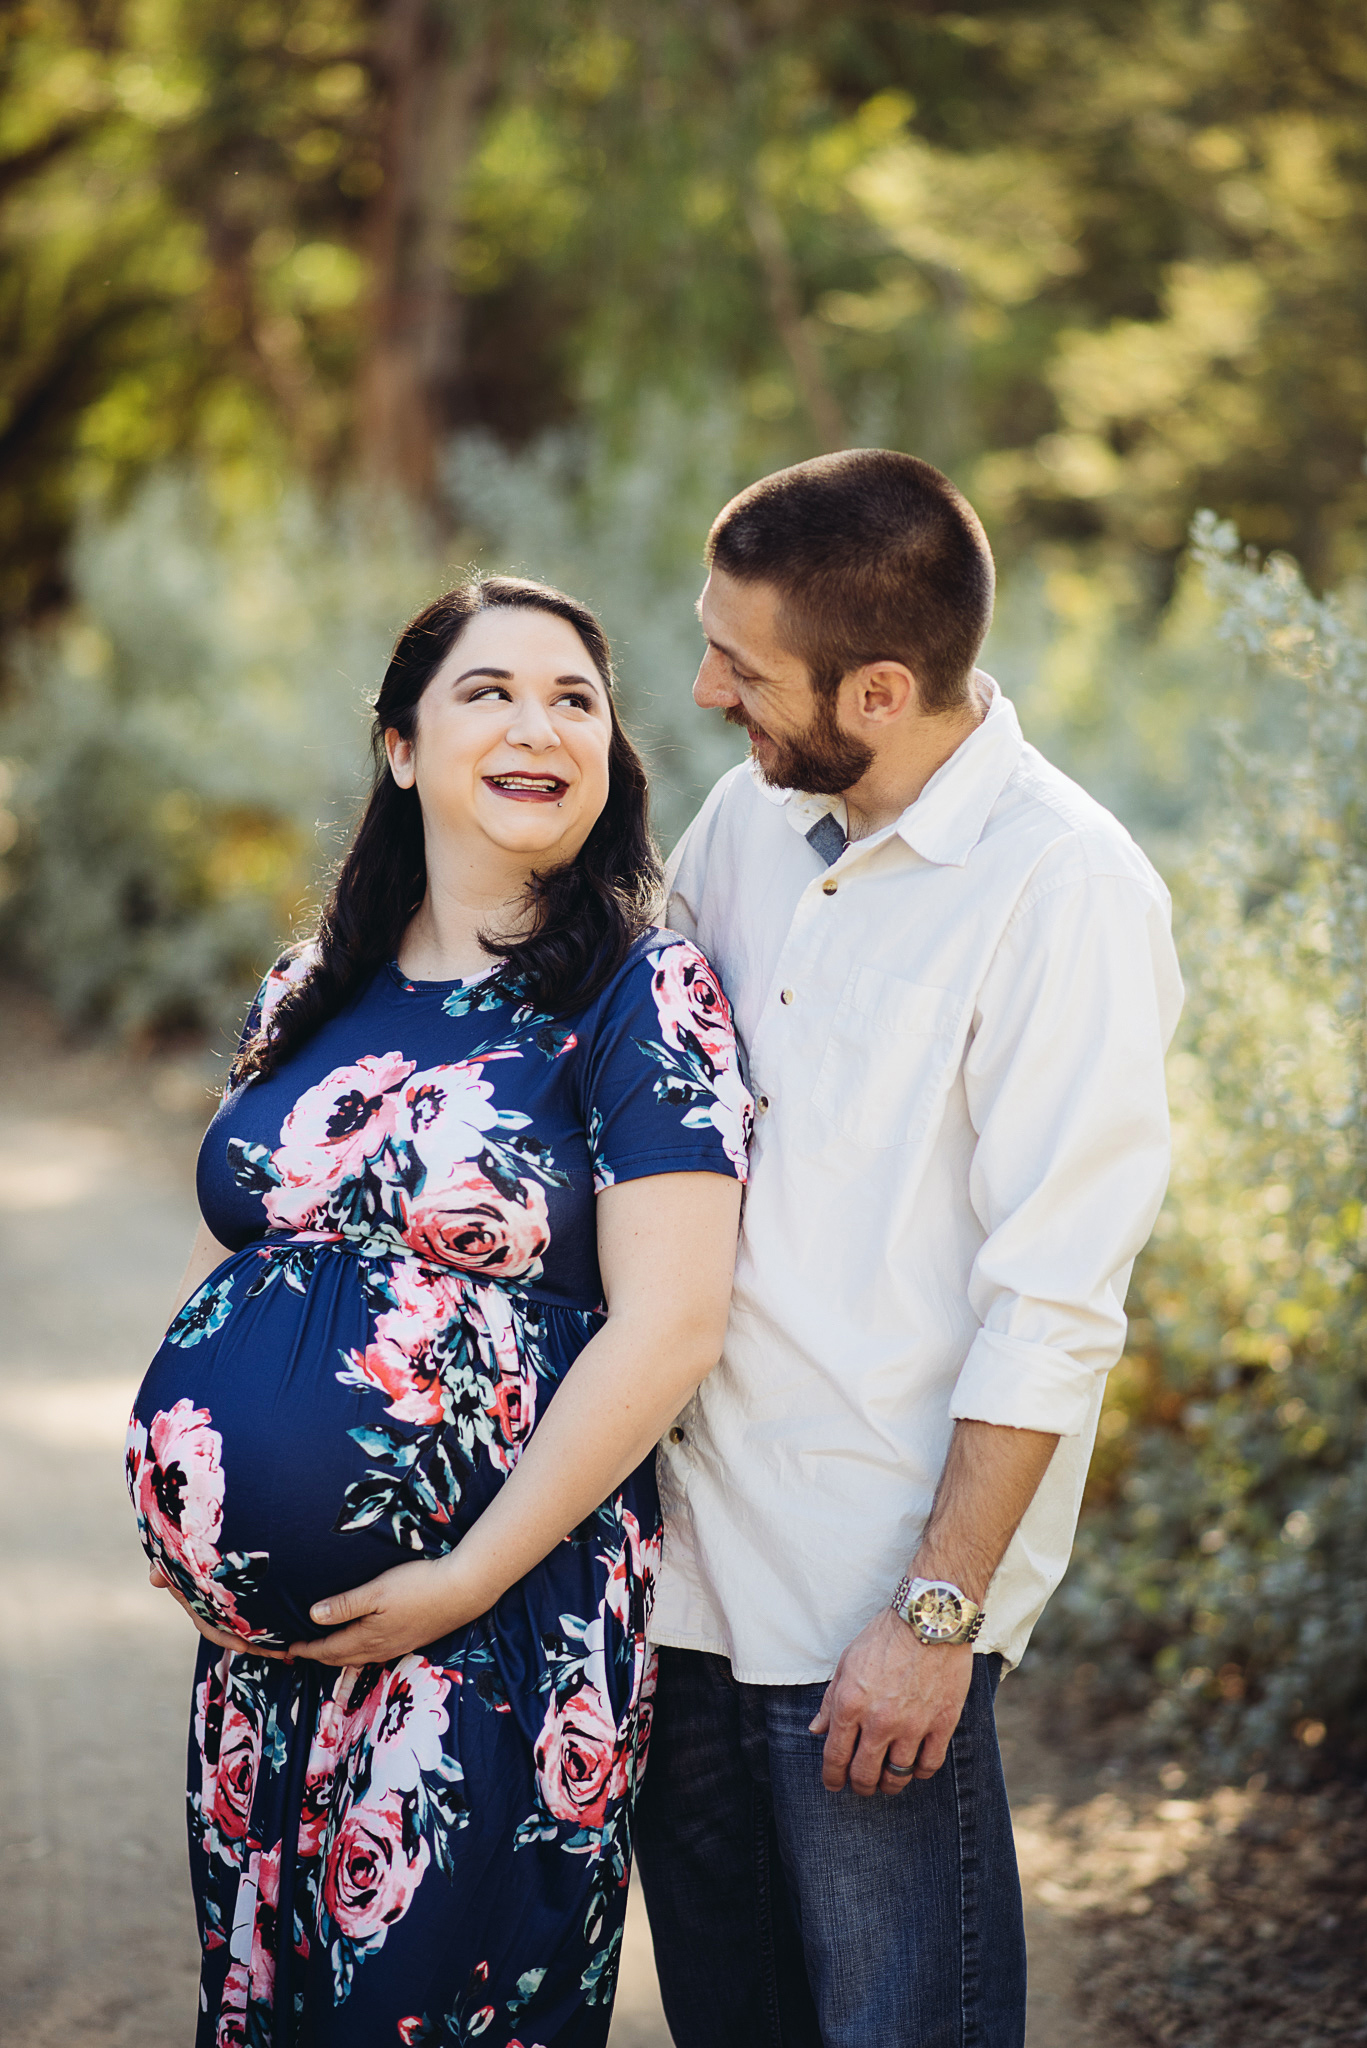 boyce-thompson-arboretum-maternity-photos-elemental-fotos-andrew-ybanez-5.jpg